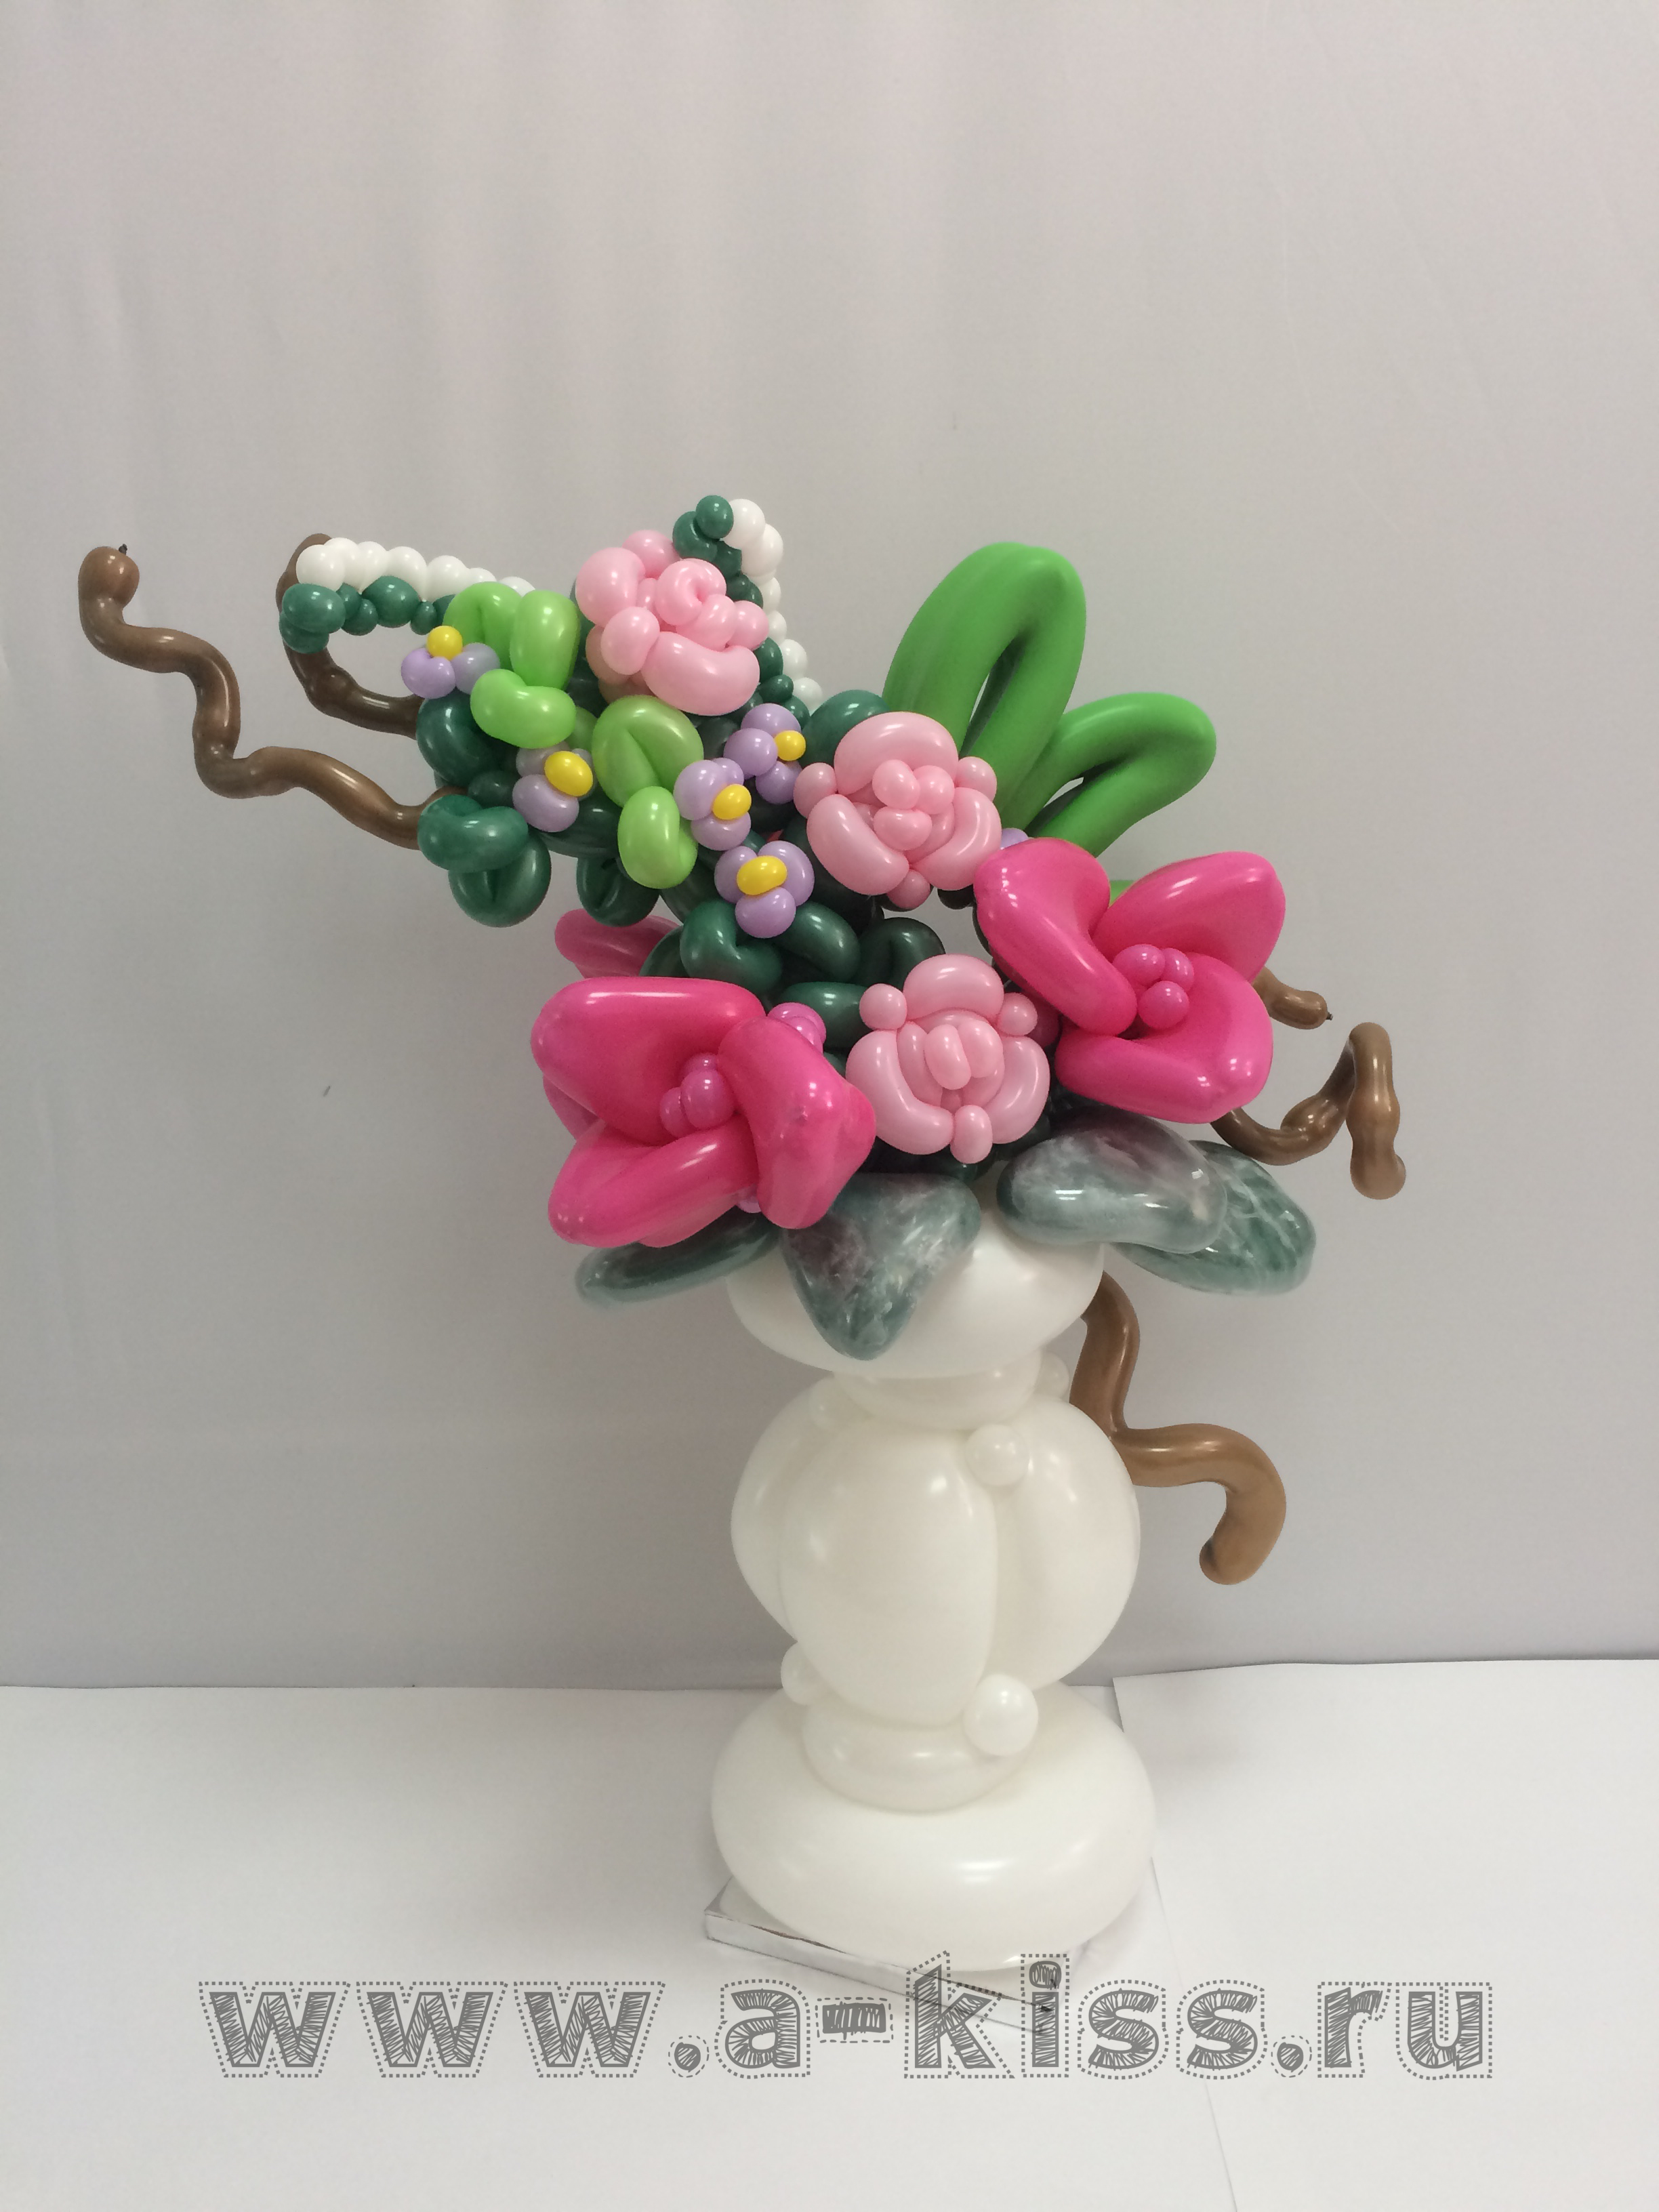 Pin By On My Balloons Pinterest Balloon Flowers